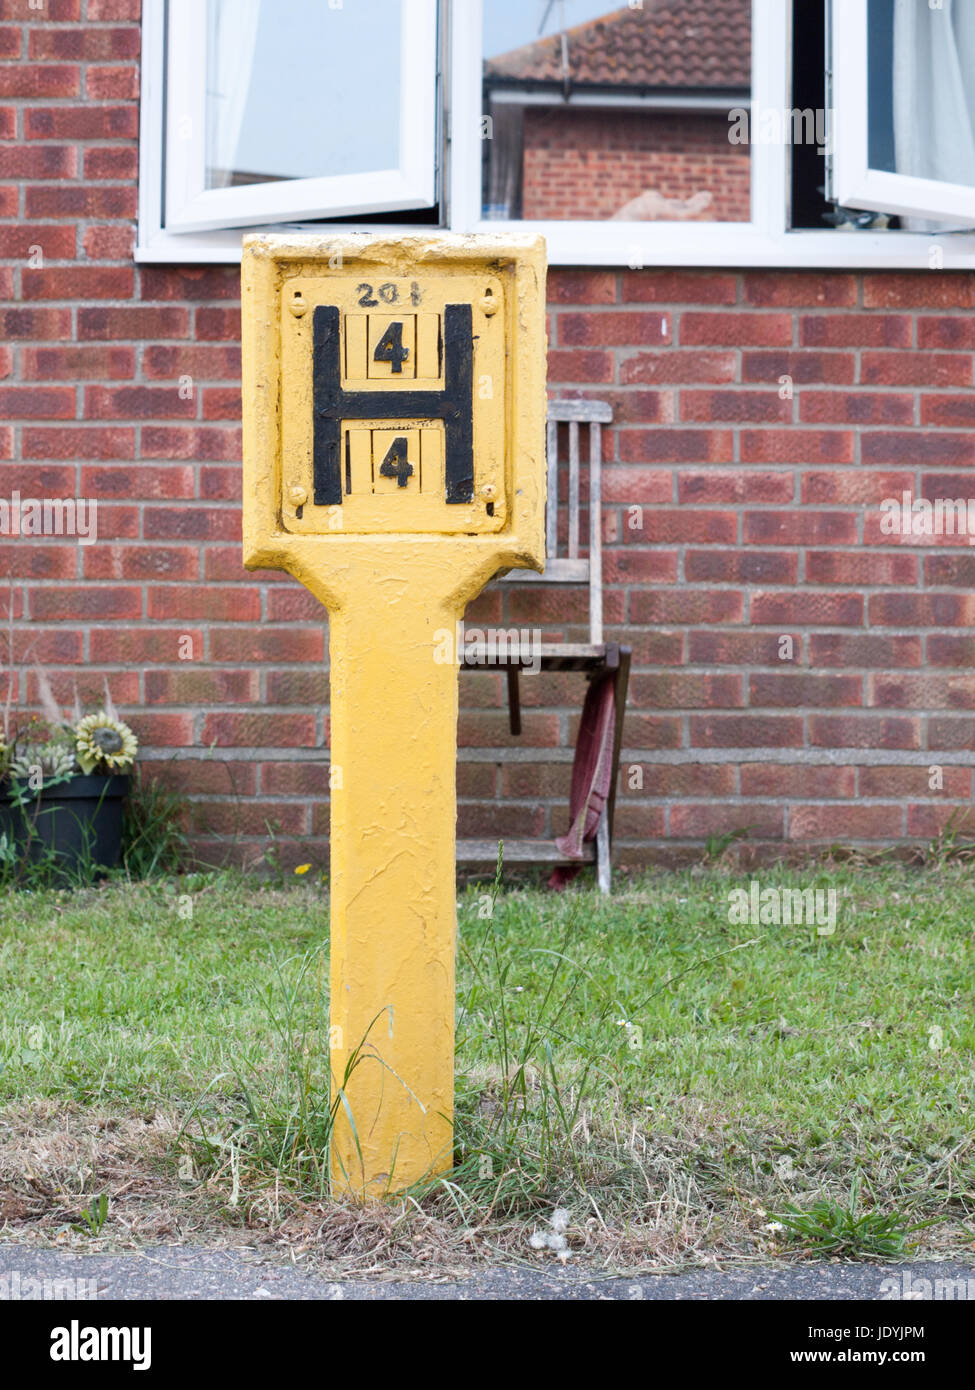 yellow h sign outside hydrant fire safety - Stock Image